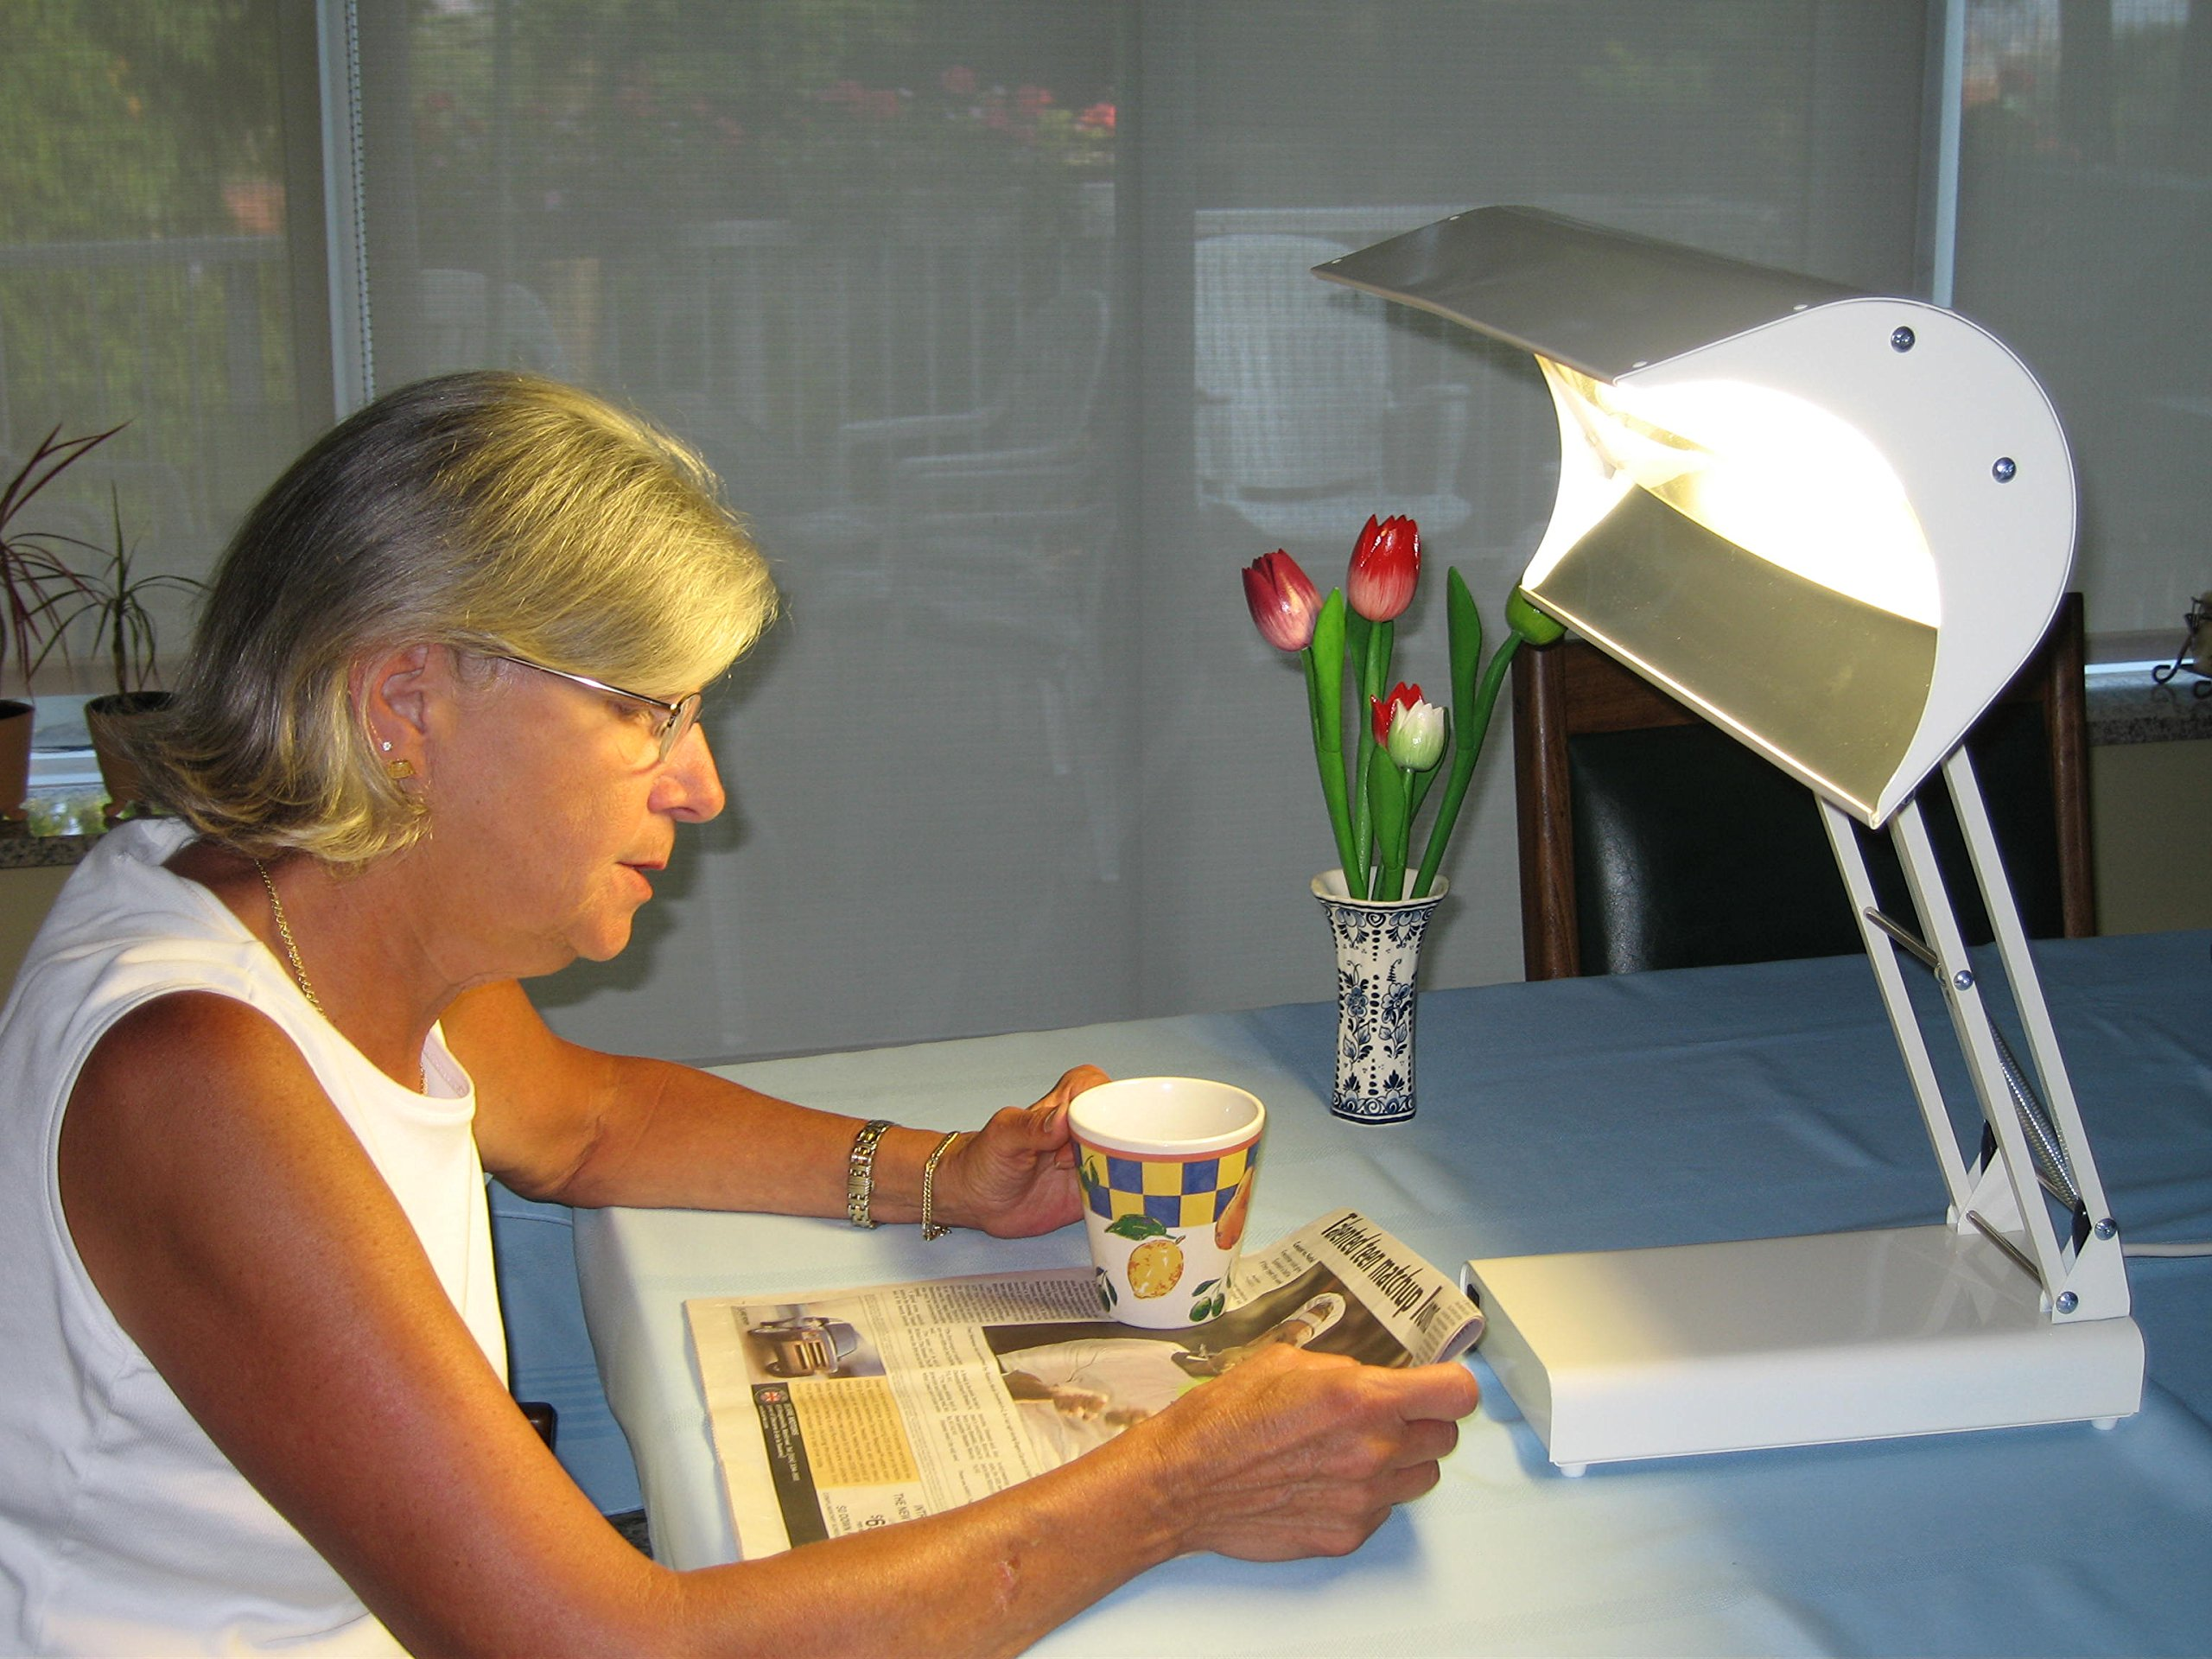 Northern Light 10,000 Lux Bright Light Therapy Desk Lamp, Beige by Northern Light Technologies (Image #4)